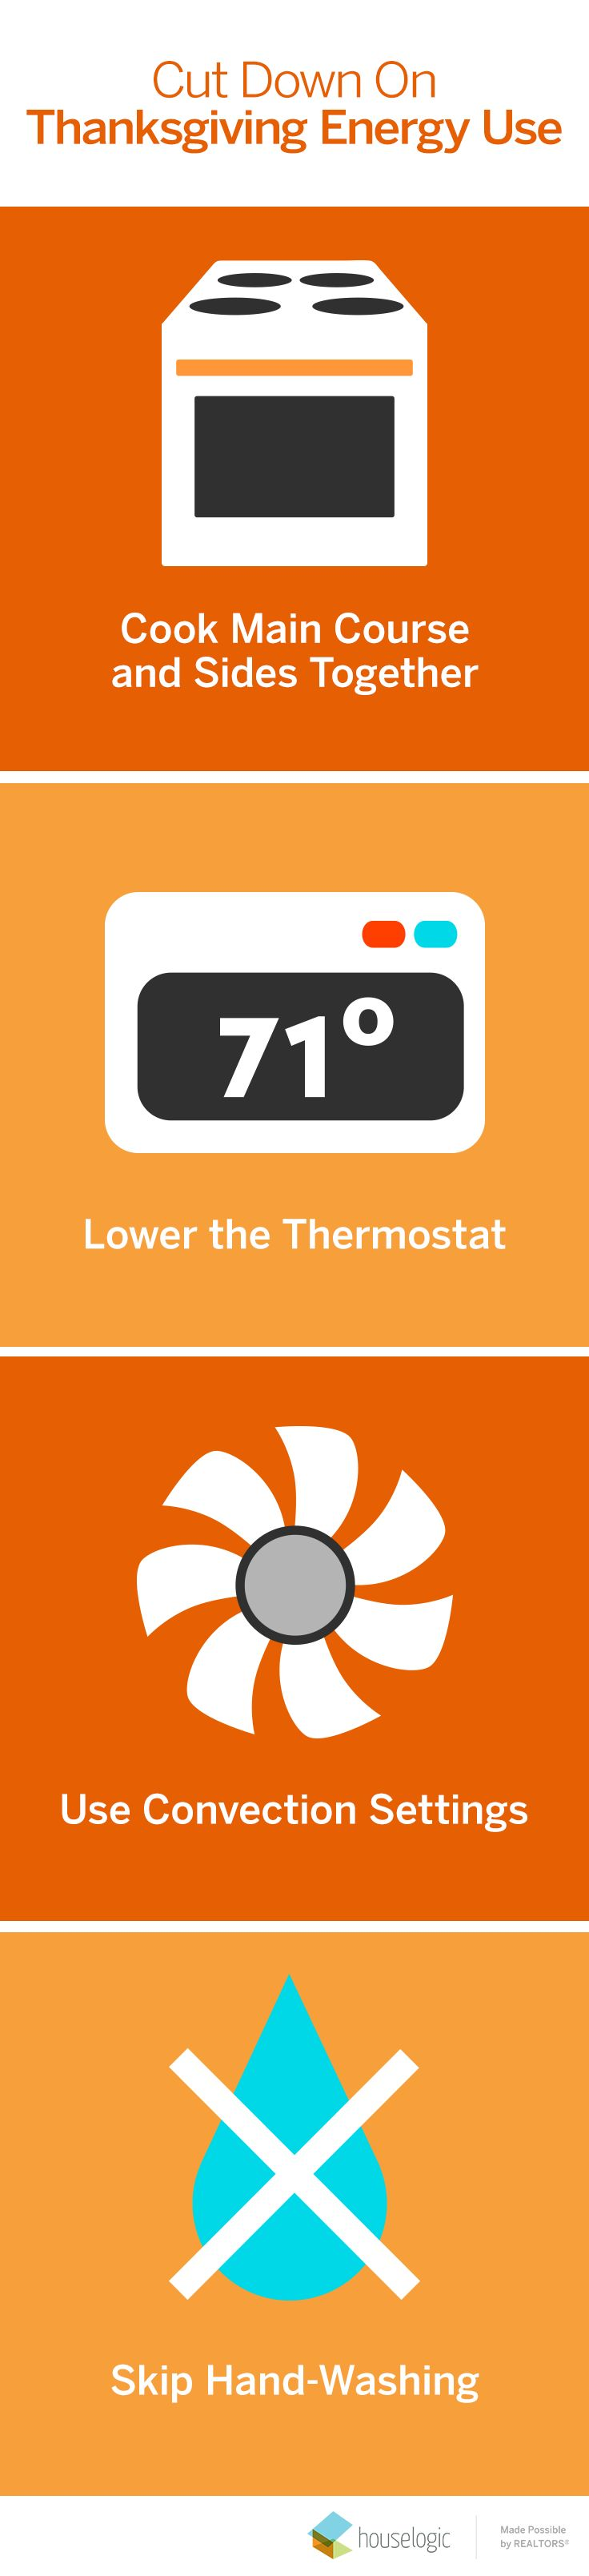 When cooking for Thanksgiving, lower your thermostat to save energy and money.